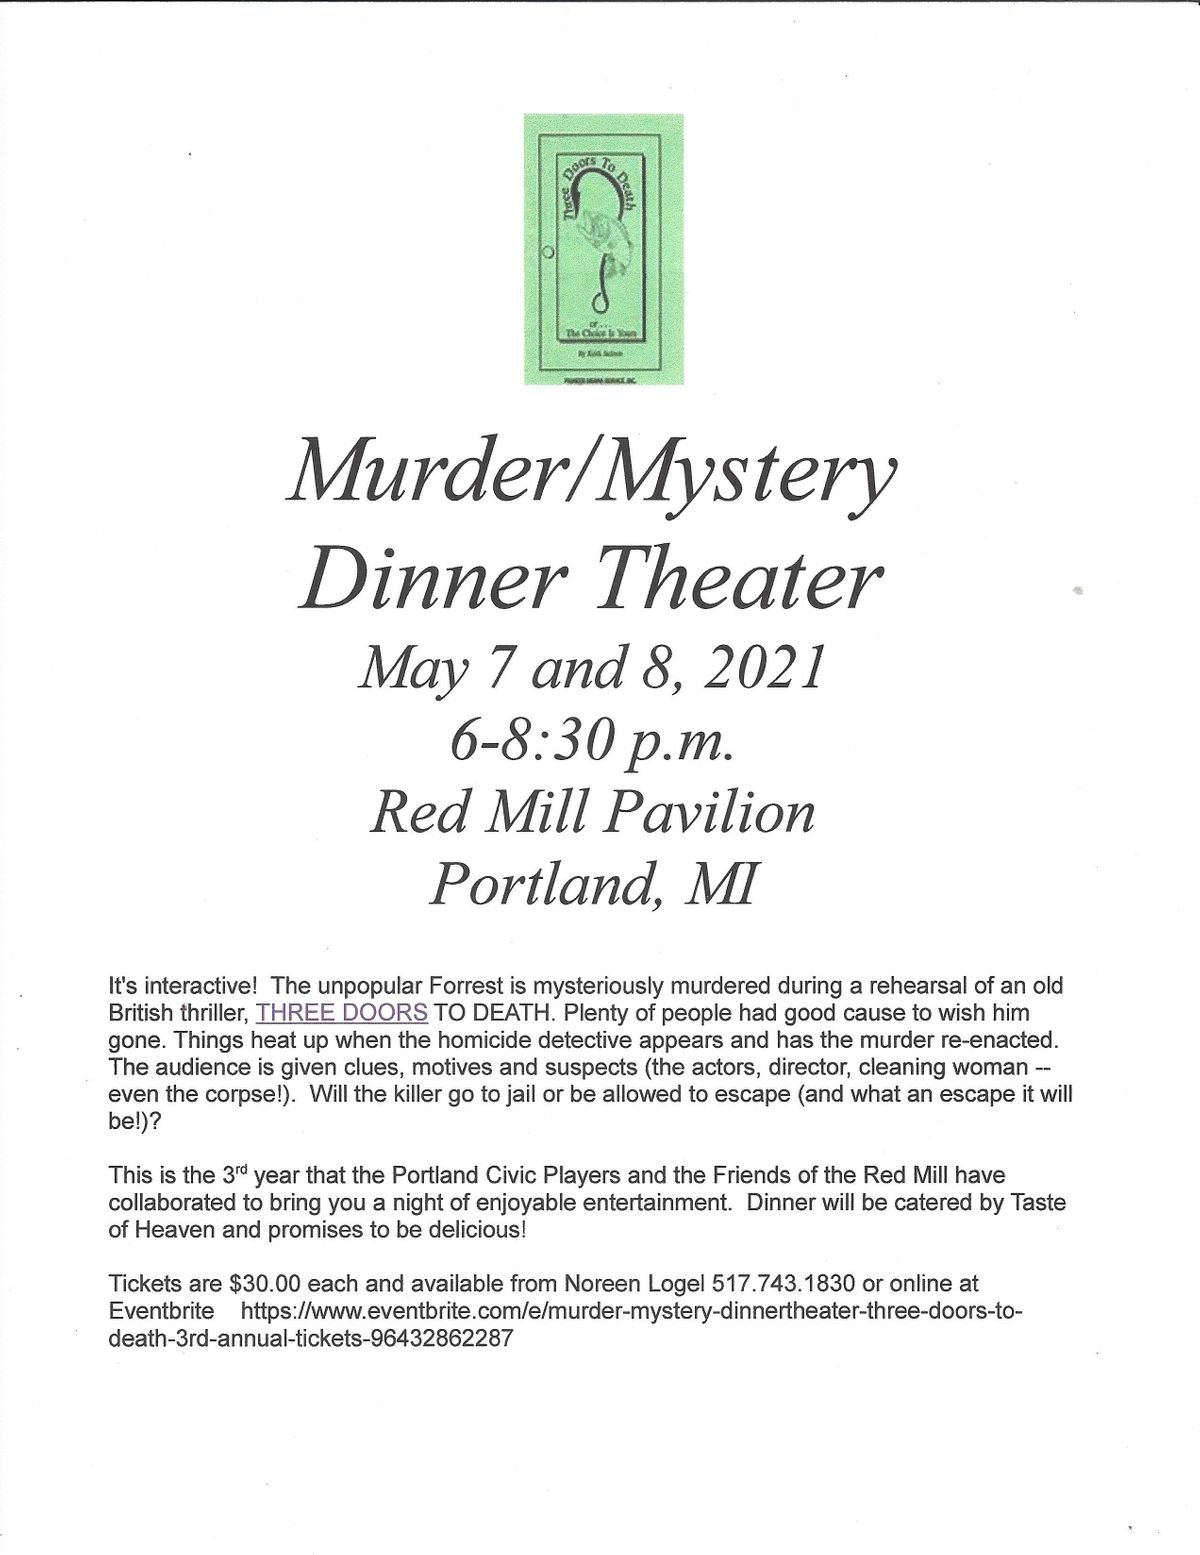 M**der Mystery Dinner/Theater - Three Doors to Death - 3rd Annual, 7 May | Event in Portland | AllEvents.in